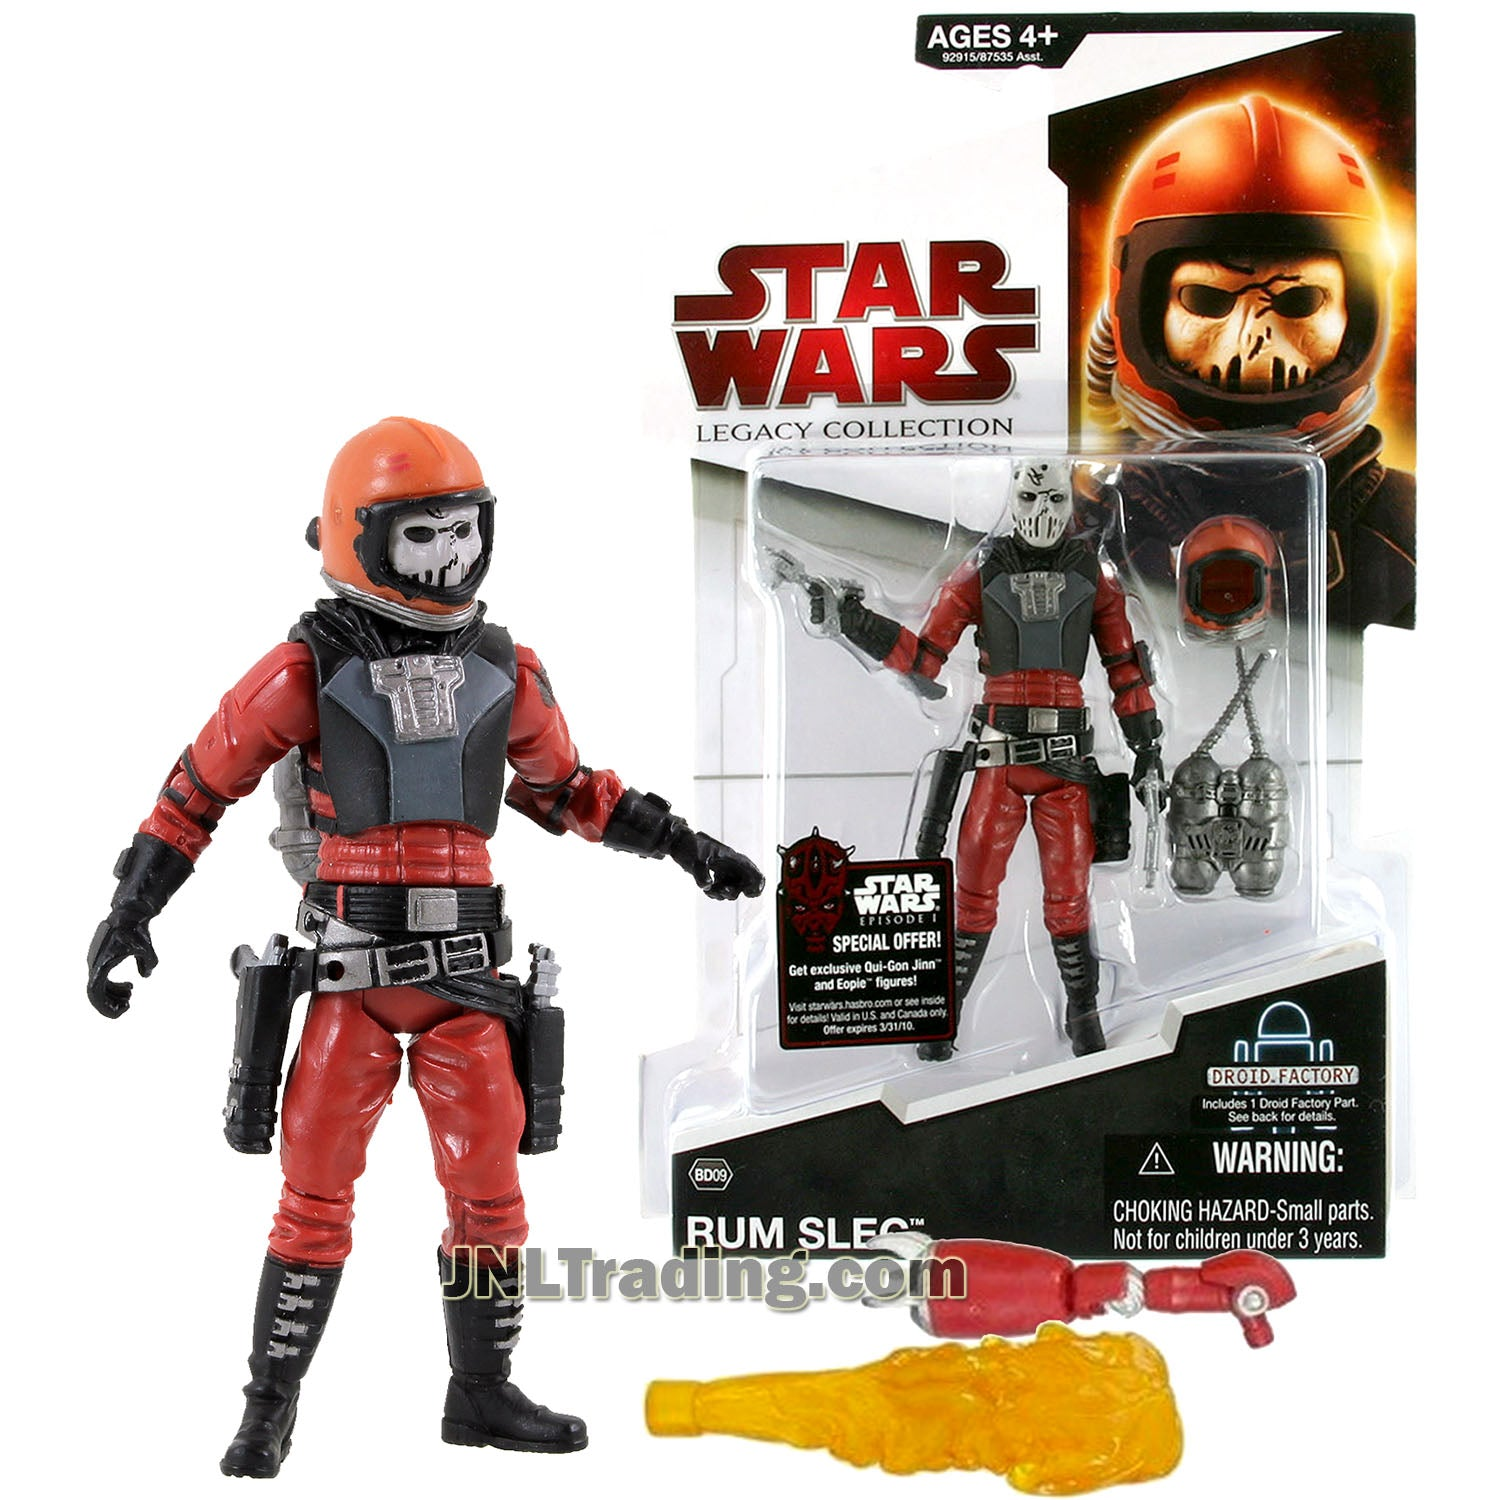 Star Wars Year 2009 Legacy Collection Droid Factory Series 4 Inch Tall Figure - Bounty Hunter Rum Sleg Bd09 With Blasters, Helmet, Jetpack And L9-l9 Droid\'s Right Arm